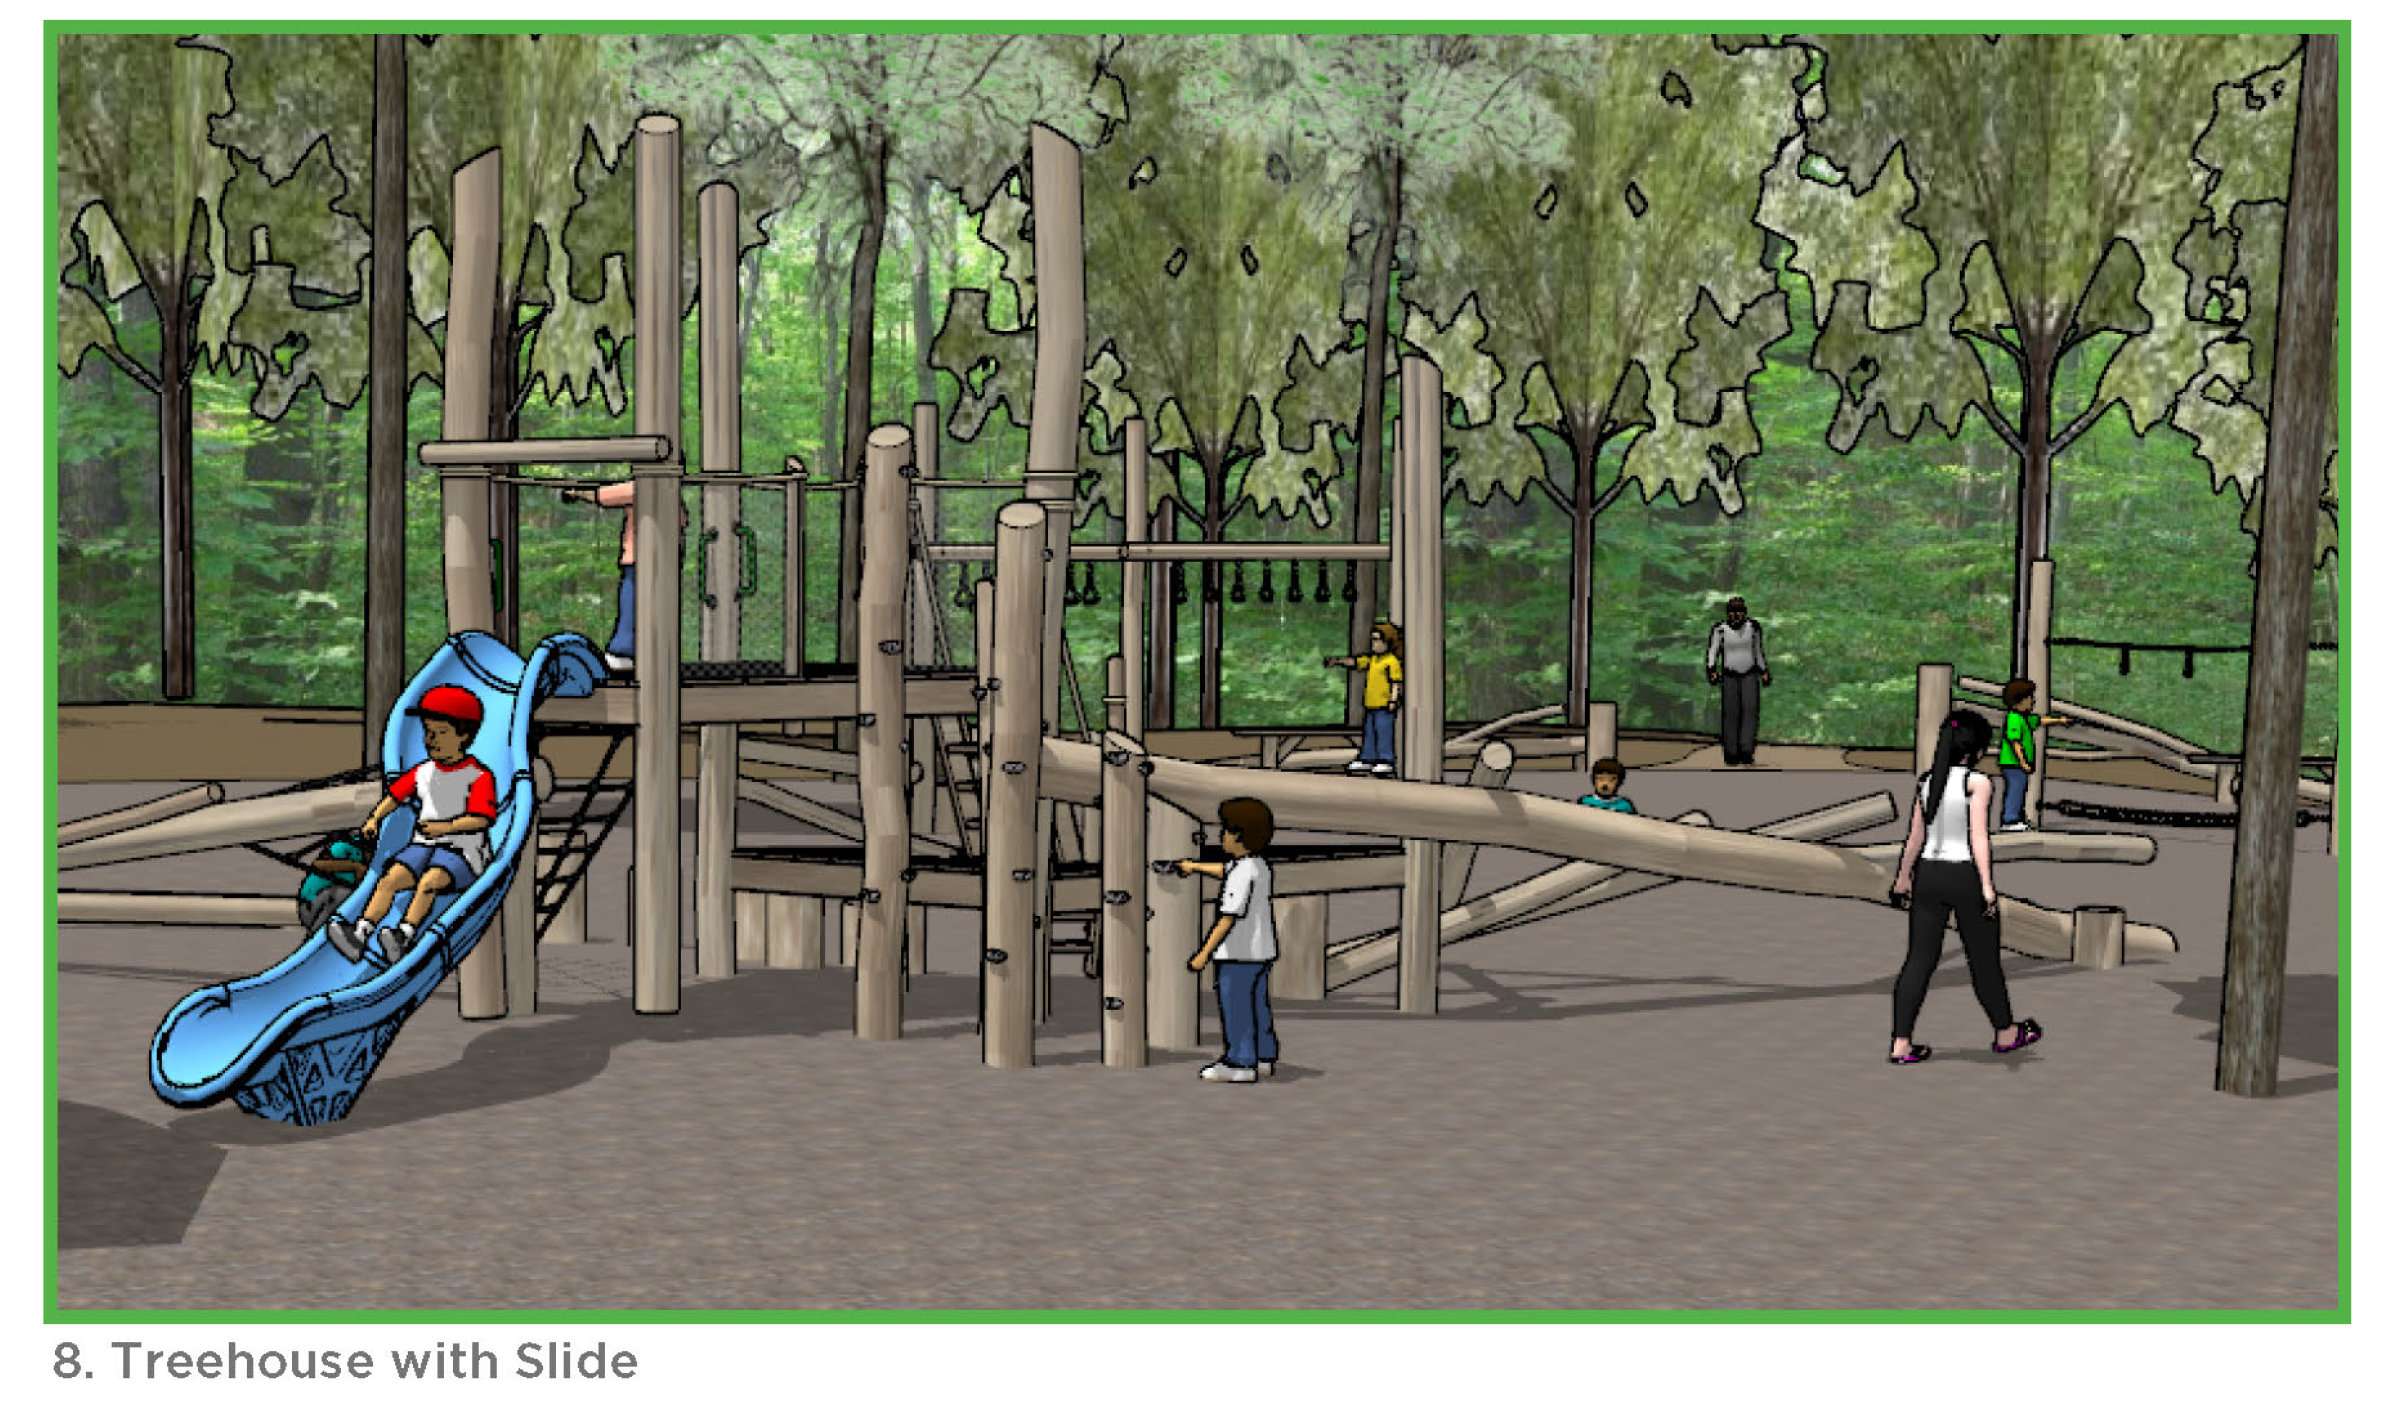 Treehouse with Slide